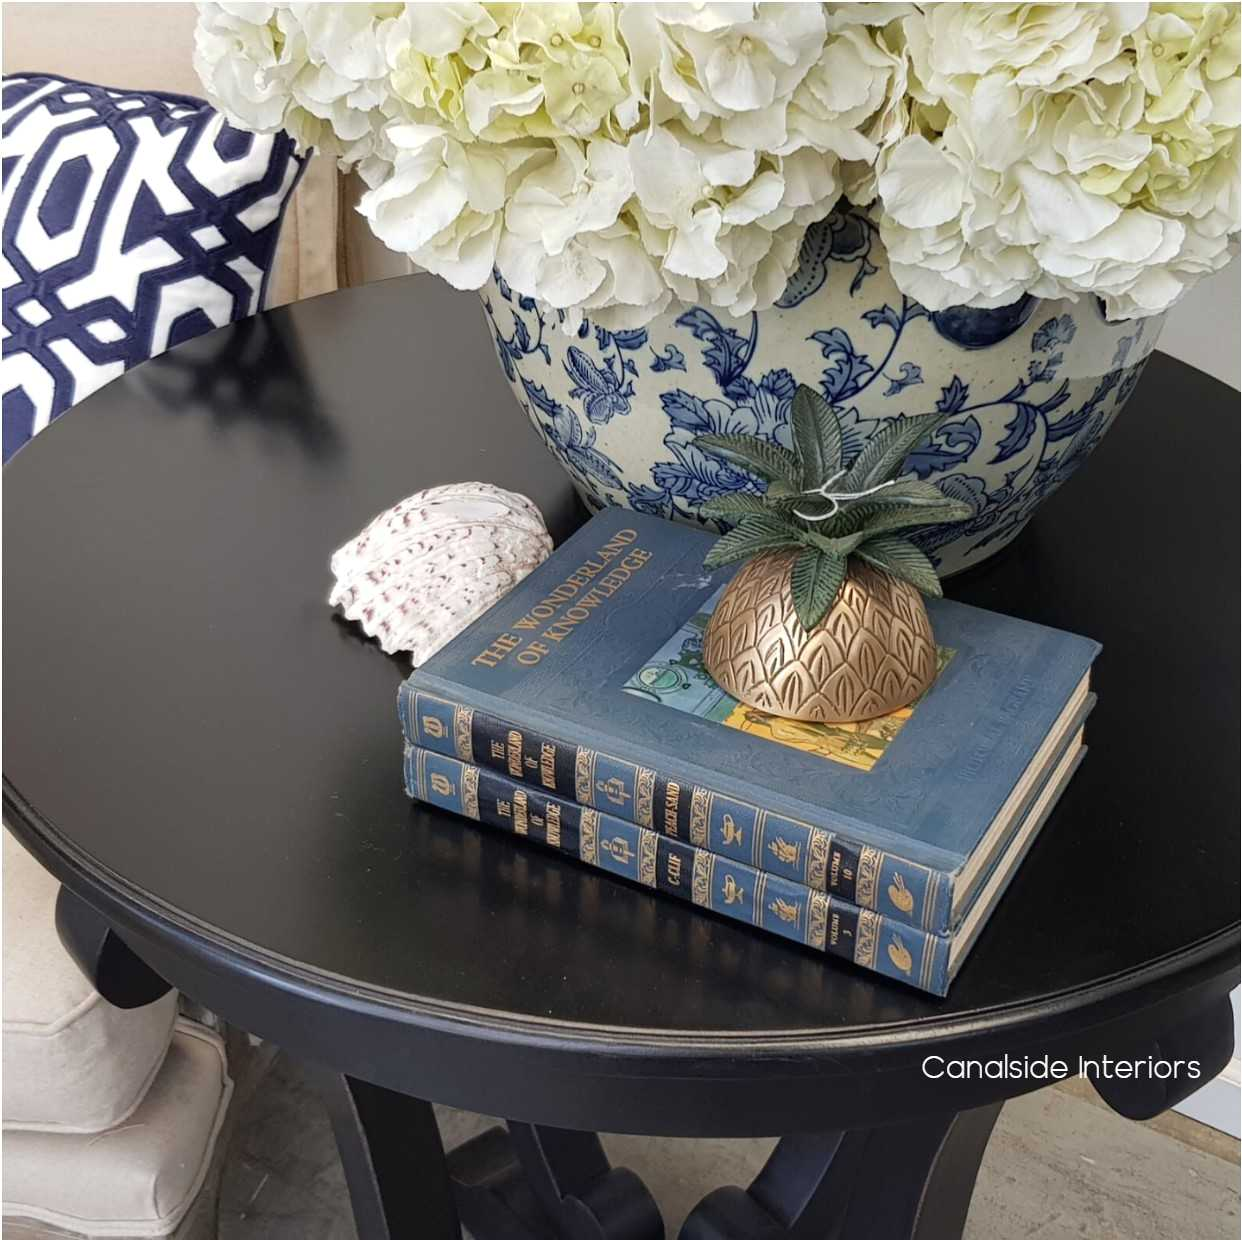 Downton Round Hall Table Side Table Black  FRENCH  FURNITURE, TABLES, HAMPTONS Style, PLANTATION Style, TABLES Side Tables, LIVING Room, LIVING Coffee & Side Tables, PLANTATION STYLE